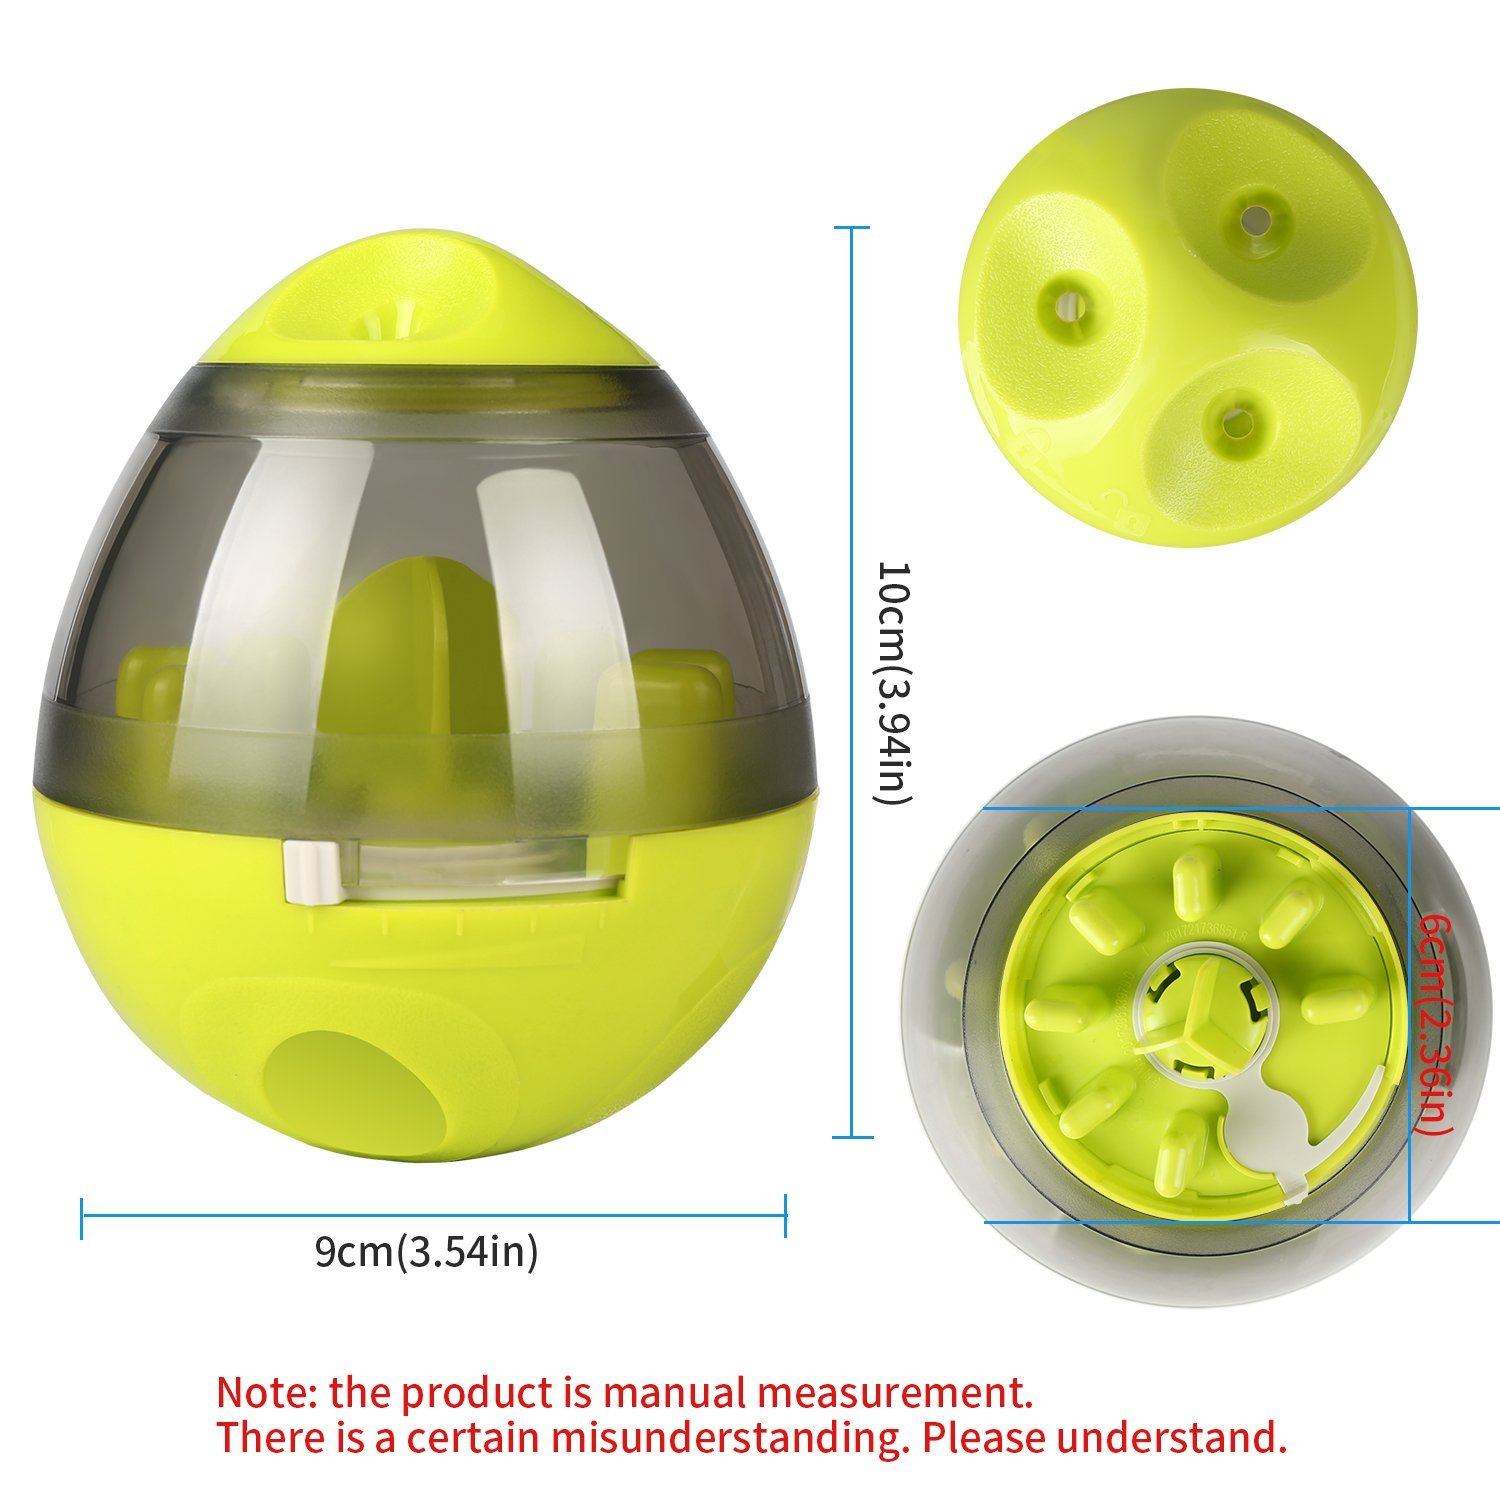 KAOSITONG Interactive Dog Toy,Interactive Food Dispensing Ball Dogs Cat Increases IQ & Mental Stimulation,Slows Down Eating,Promoting Active Healthy Feeding Small Medium Large Dogs,Easy to Clean by KAOSITONG (Image #3)